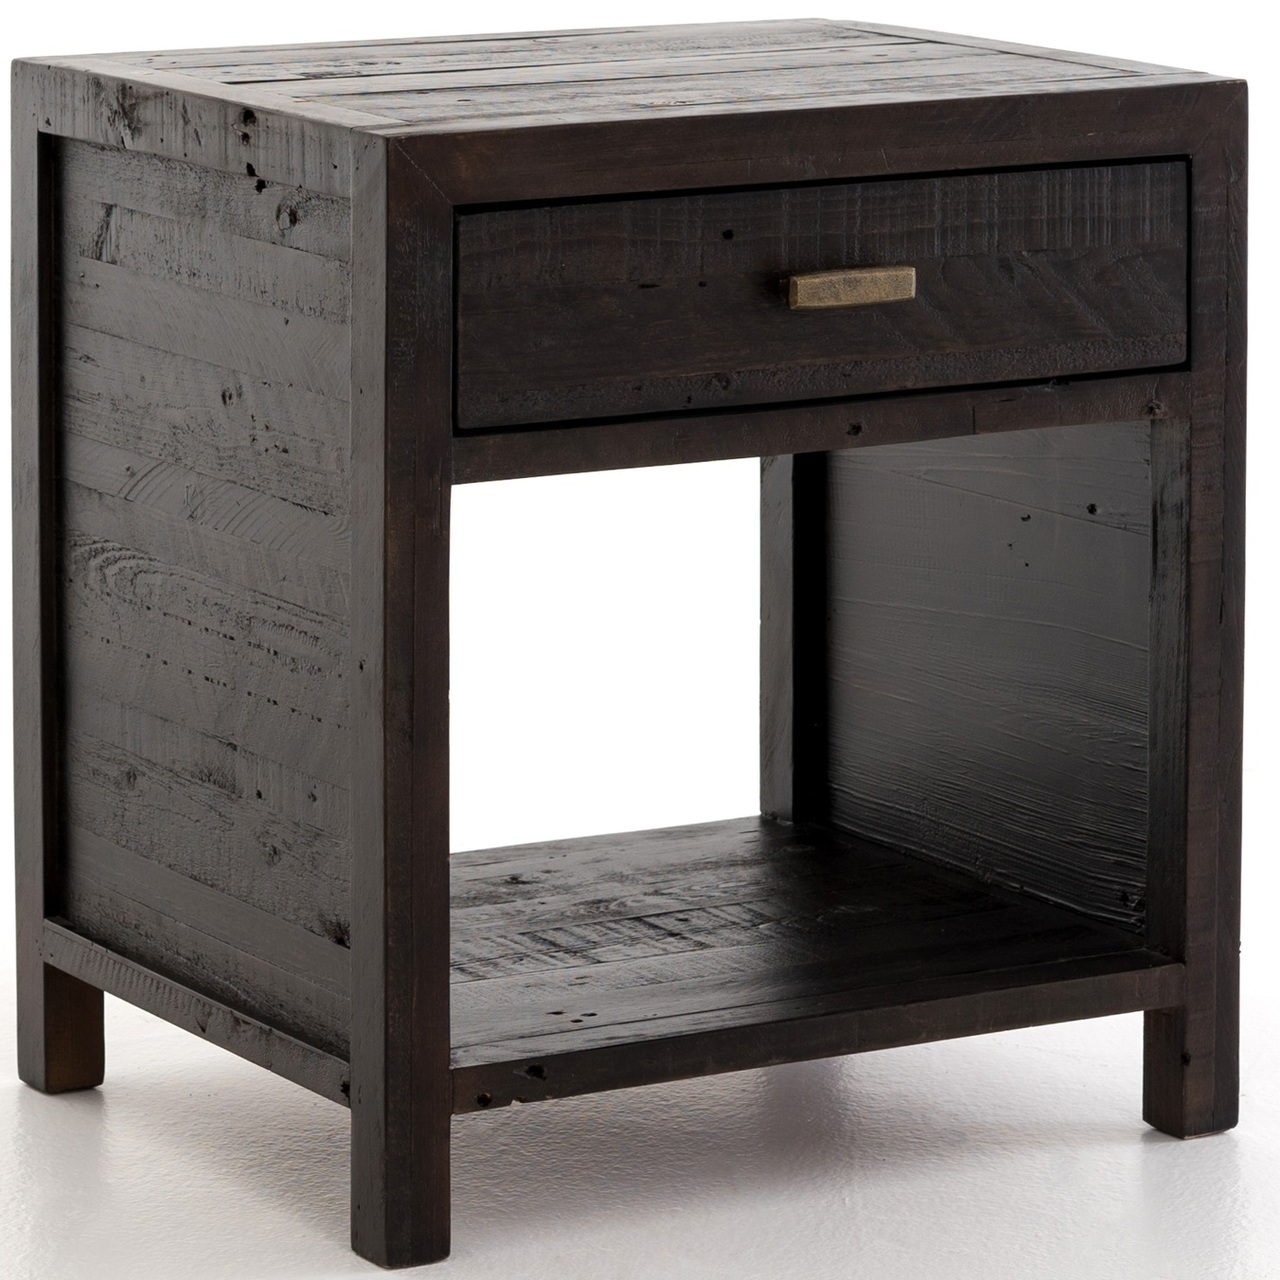 caminito dark carbon reclaimed wood end table zin home vcna prm black with basket hokku designs coffee unfinished office desk iron legs lovbacken side kmart toddler shoes saarinen